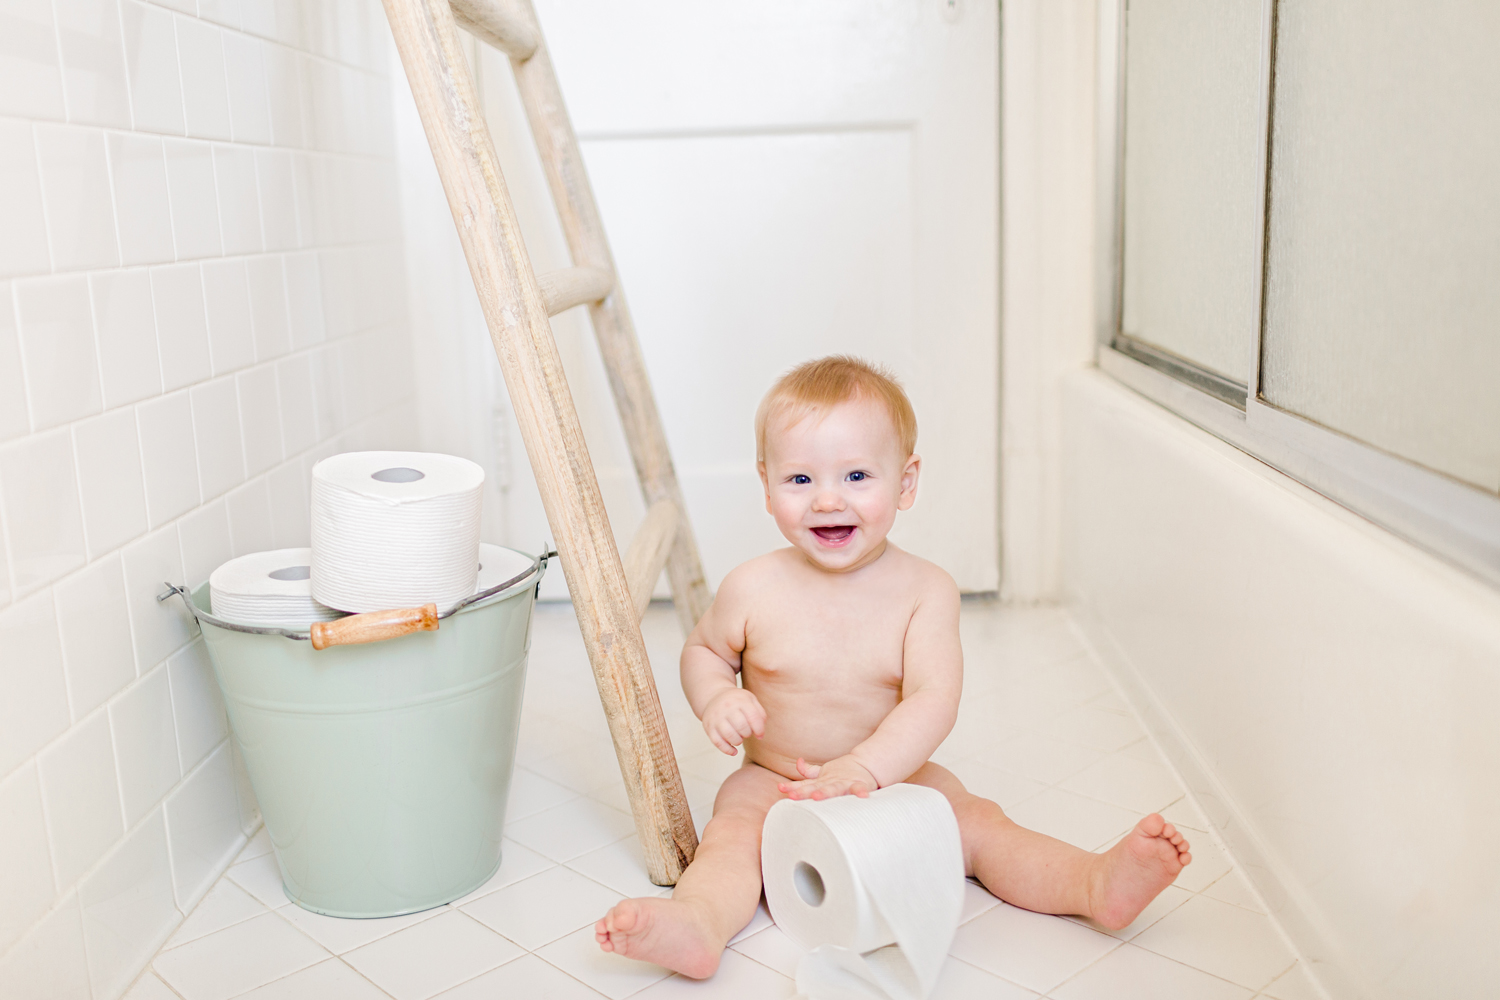 baby-boy-laughs-plays-with-toilet-paper